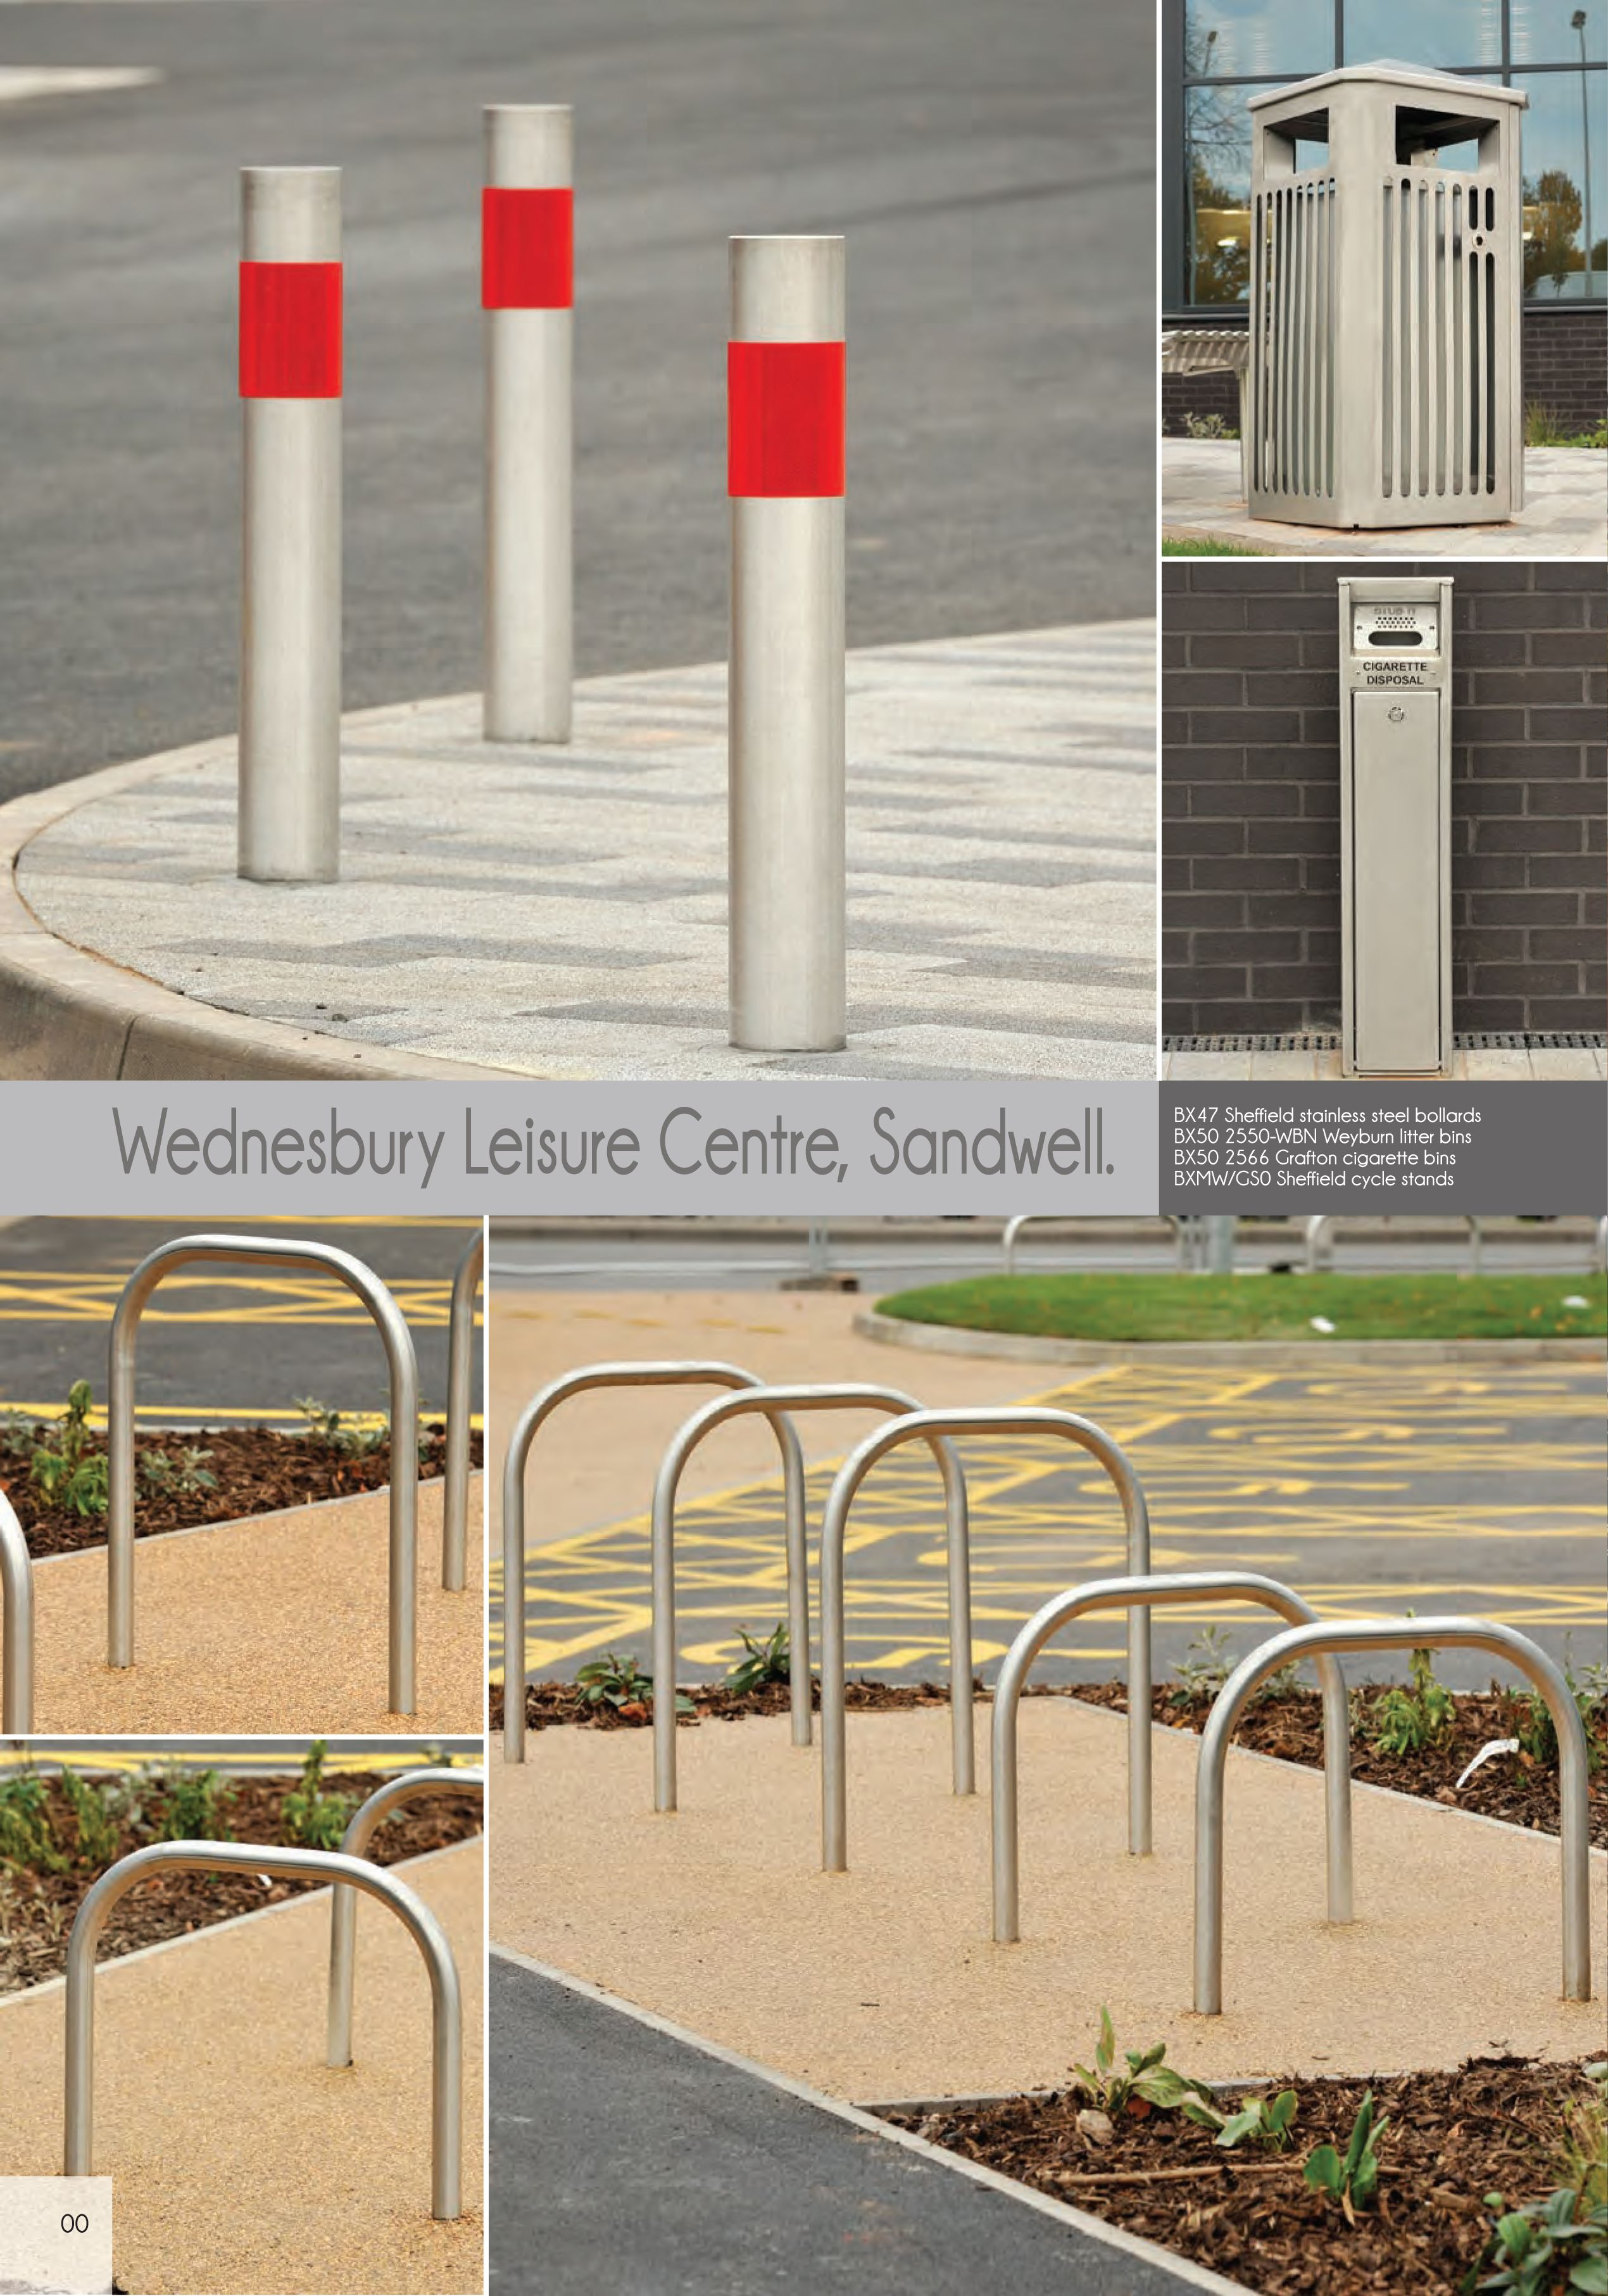 Wednesbury Leisure Centre Sandwell Street Furniture Bollards - Leisure furniture